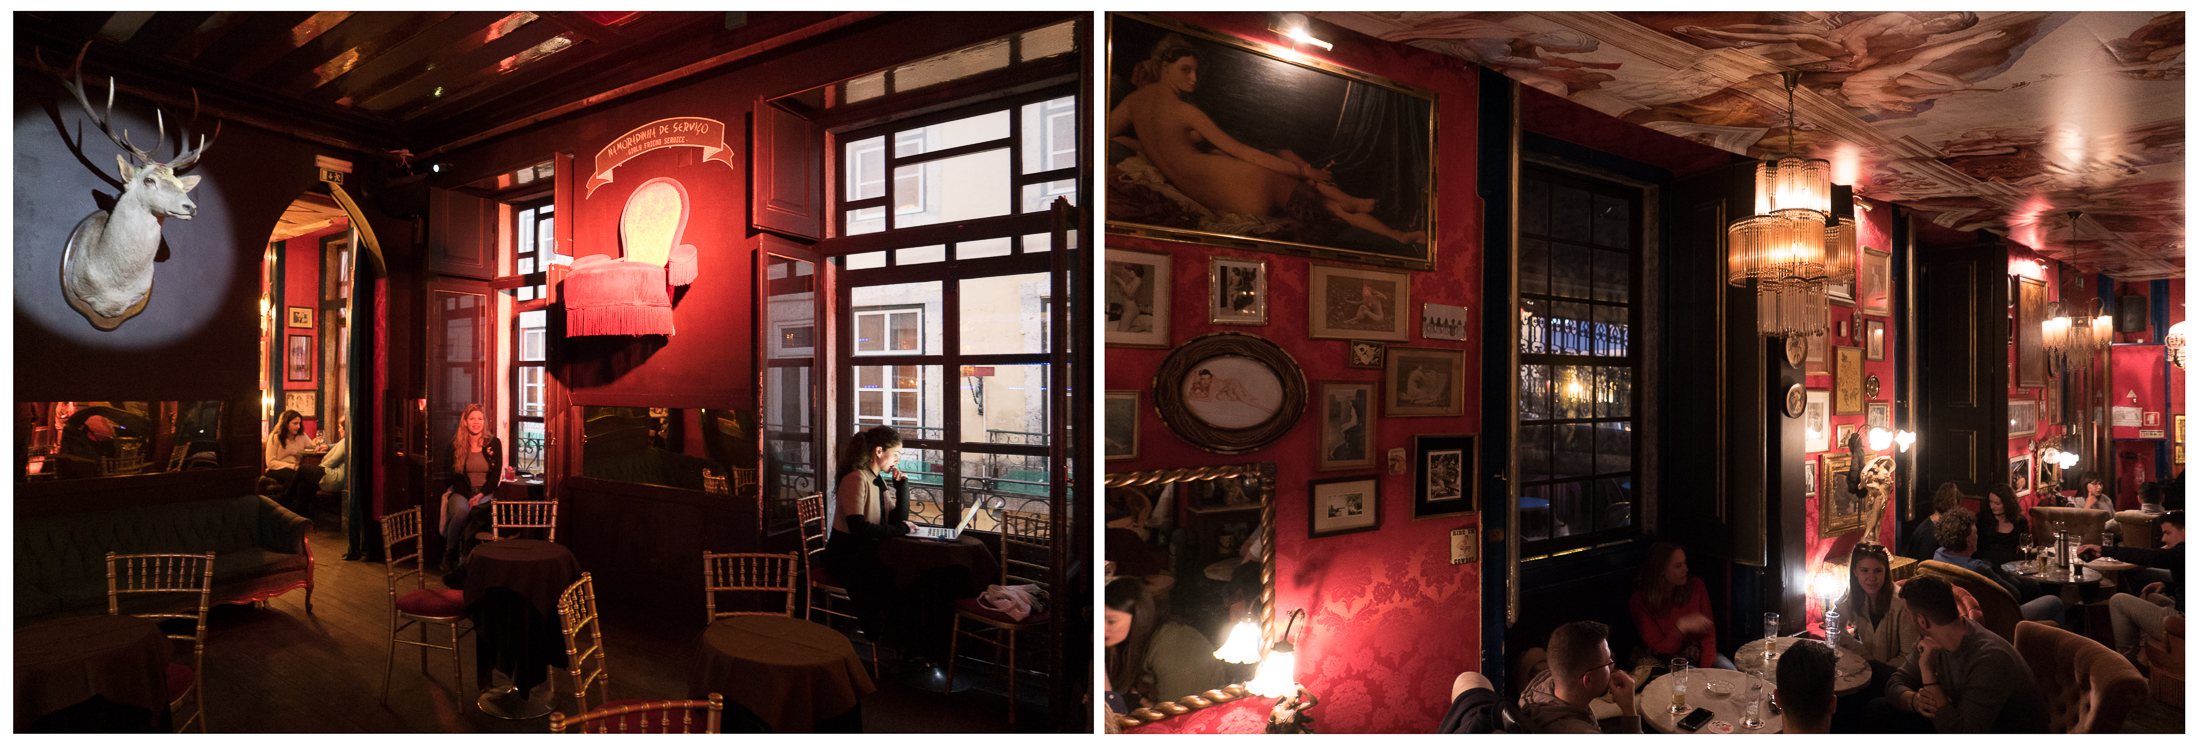 Photo workshops in Lisbon and the Algarve- The charming, and sexy, Pensao Amor Cafè, Lisbon